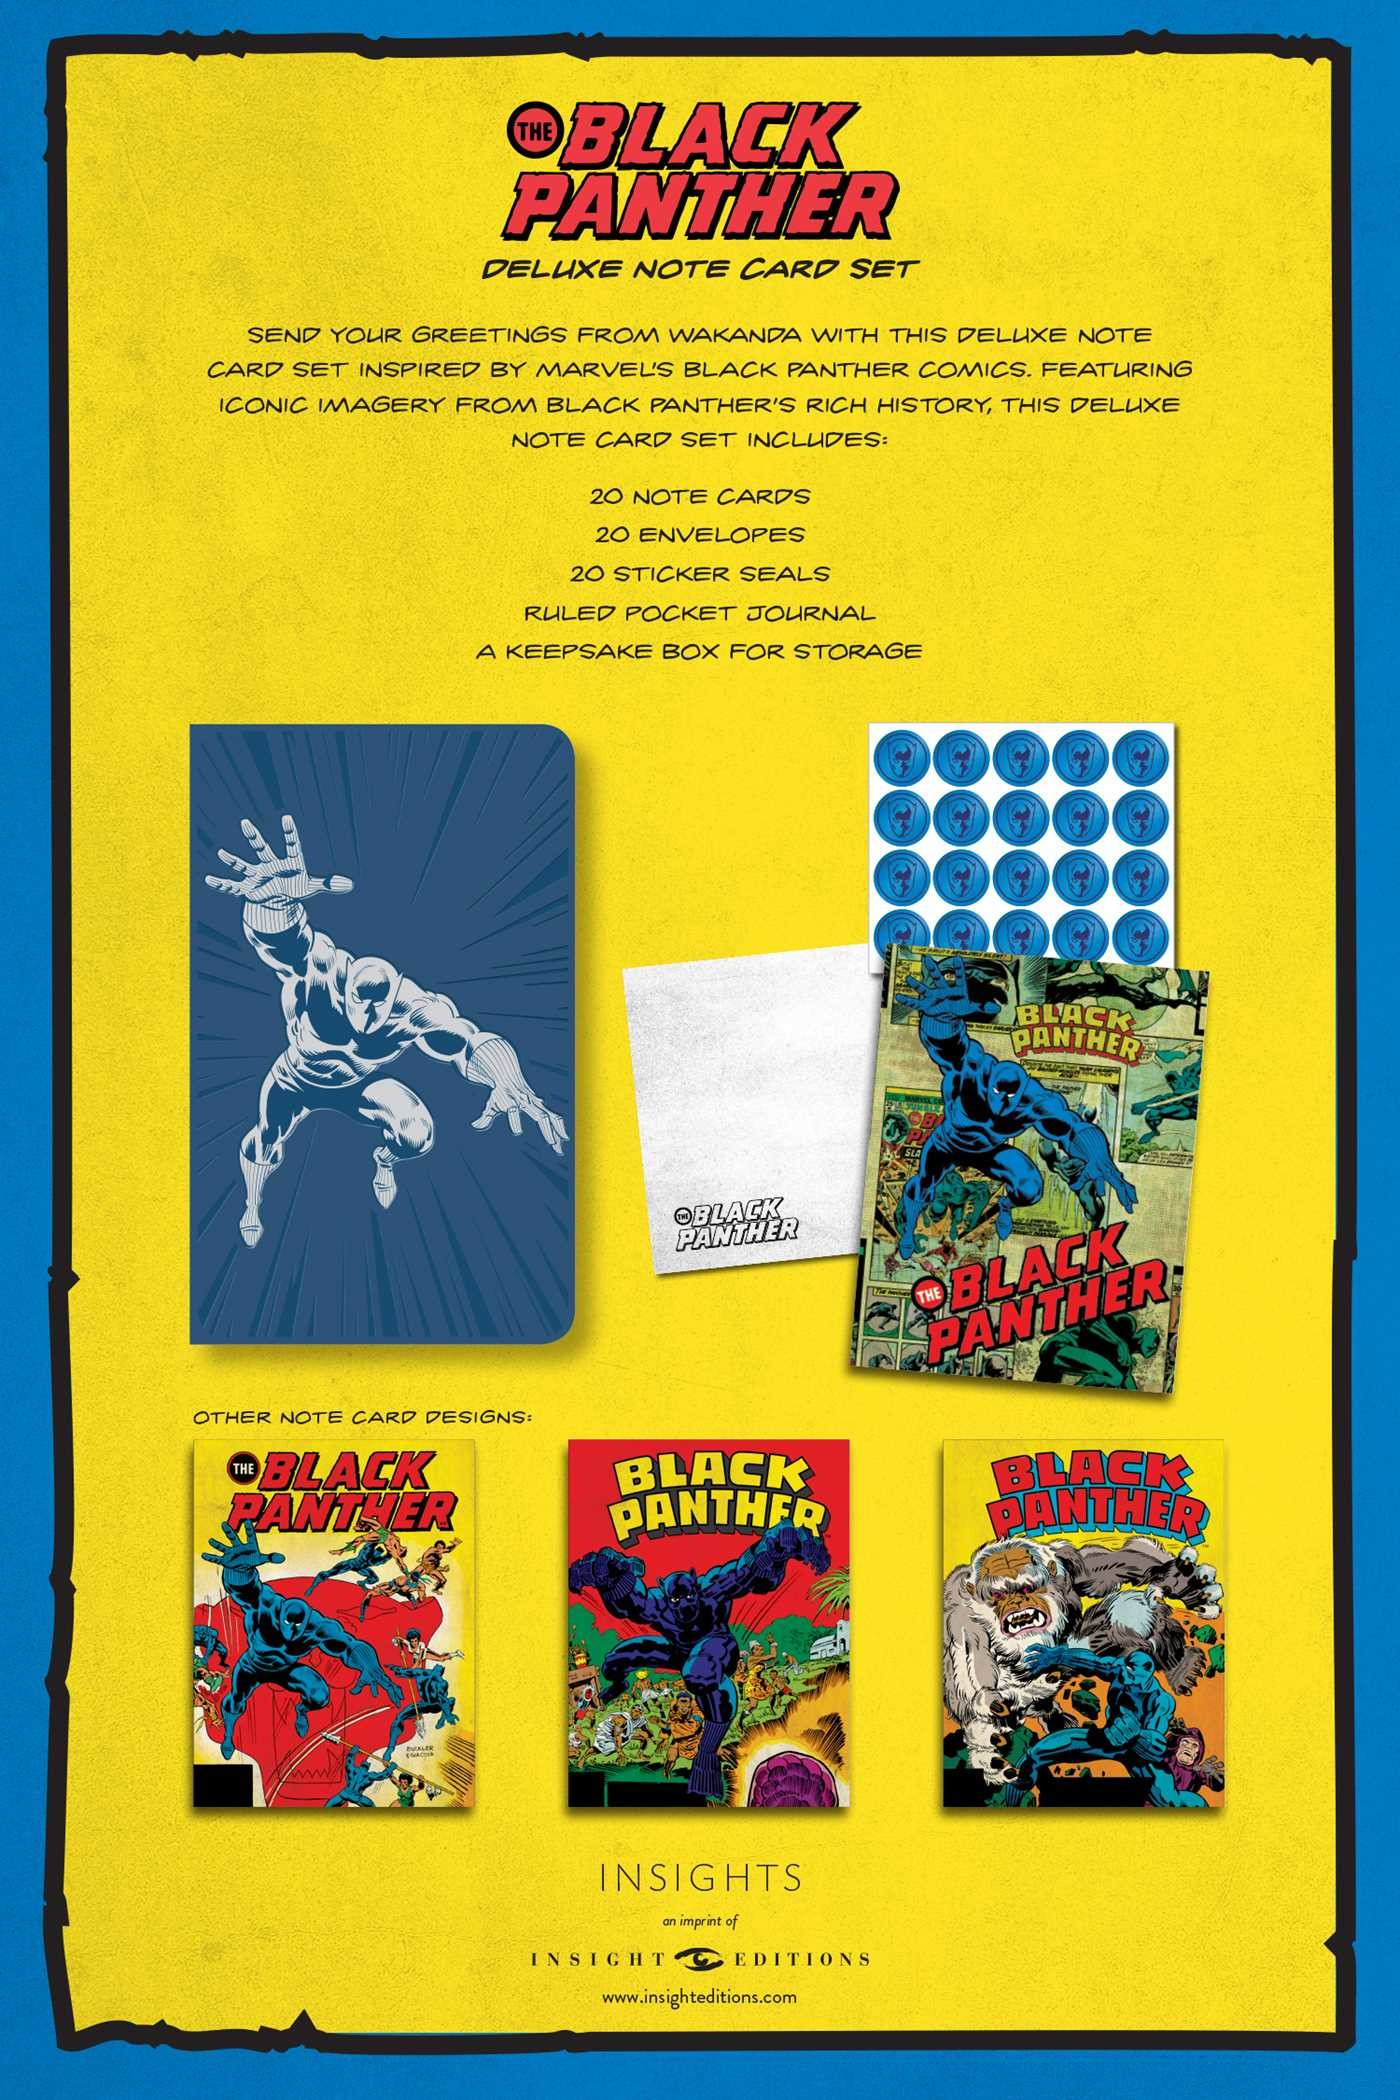 Marvel comics black panther deluxe note card set with keepsake book box 9781683833390.in09